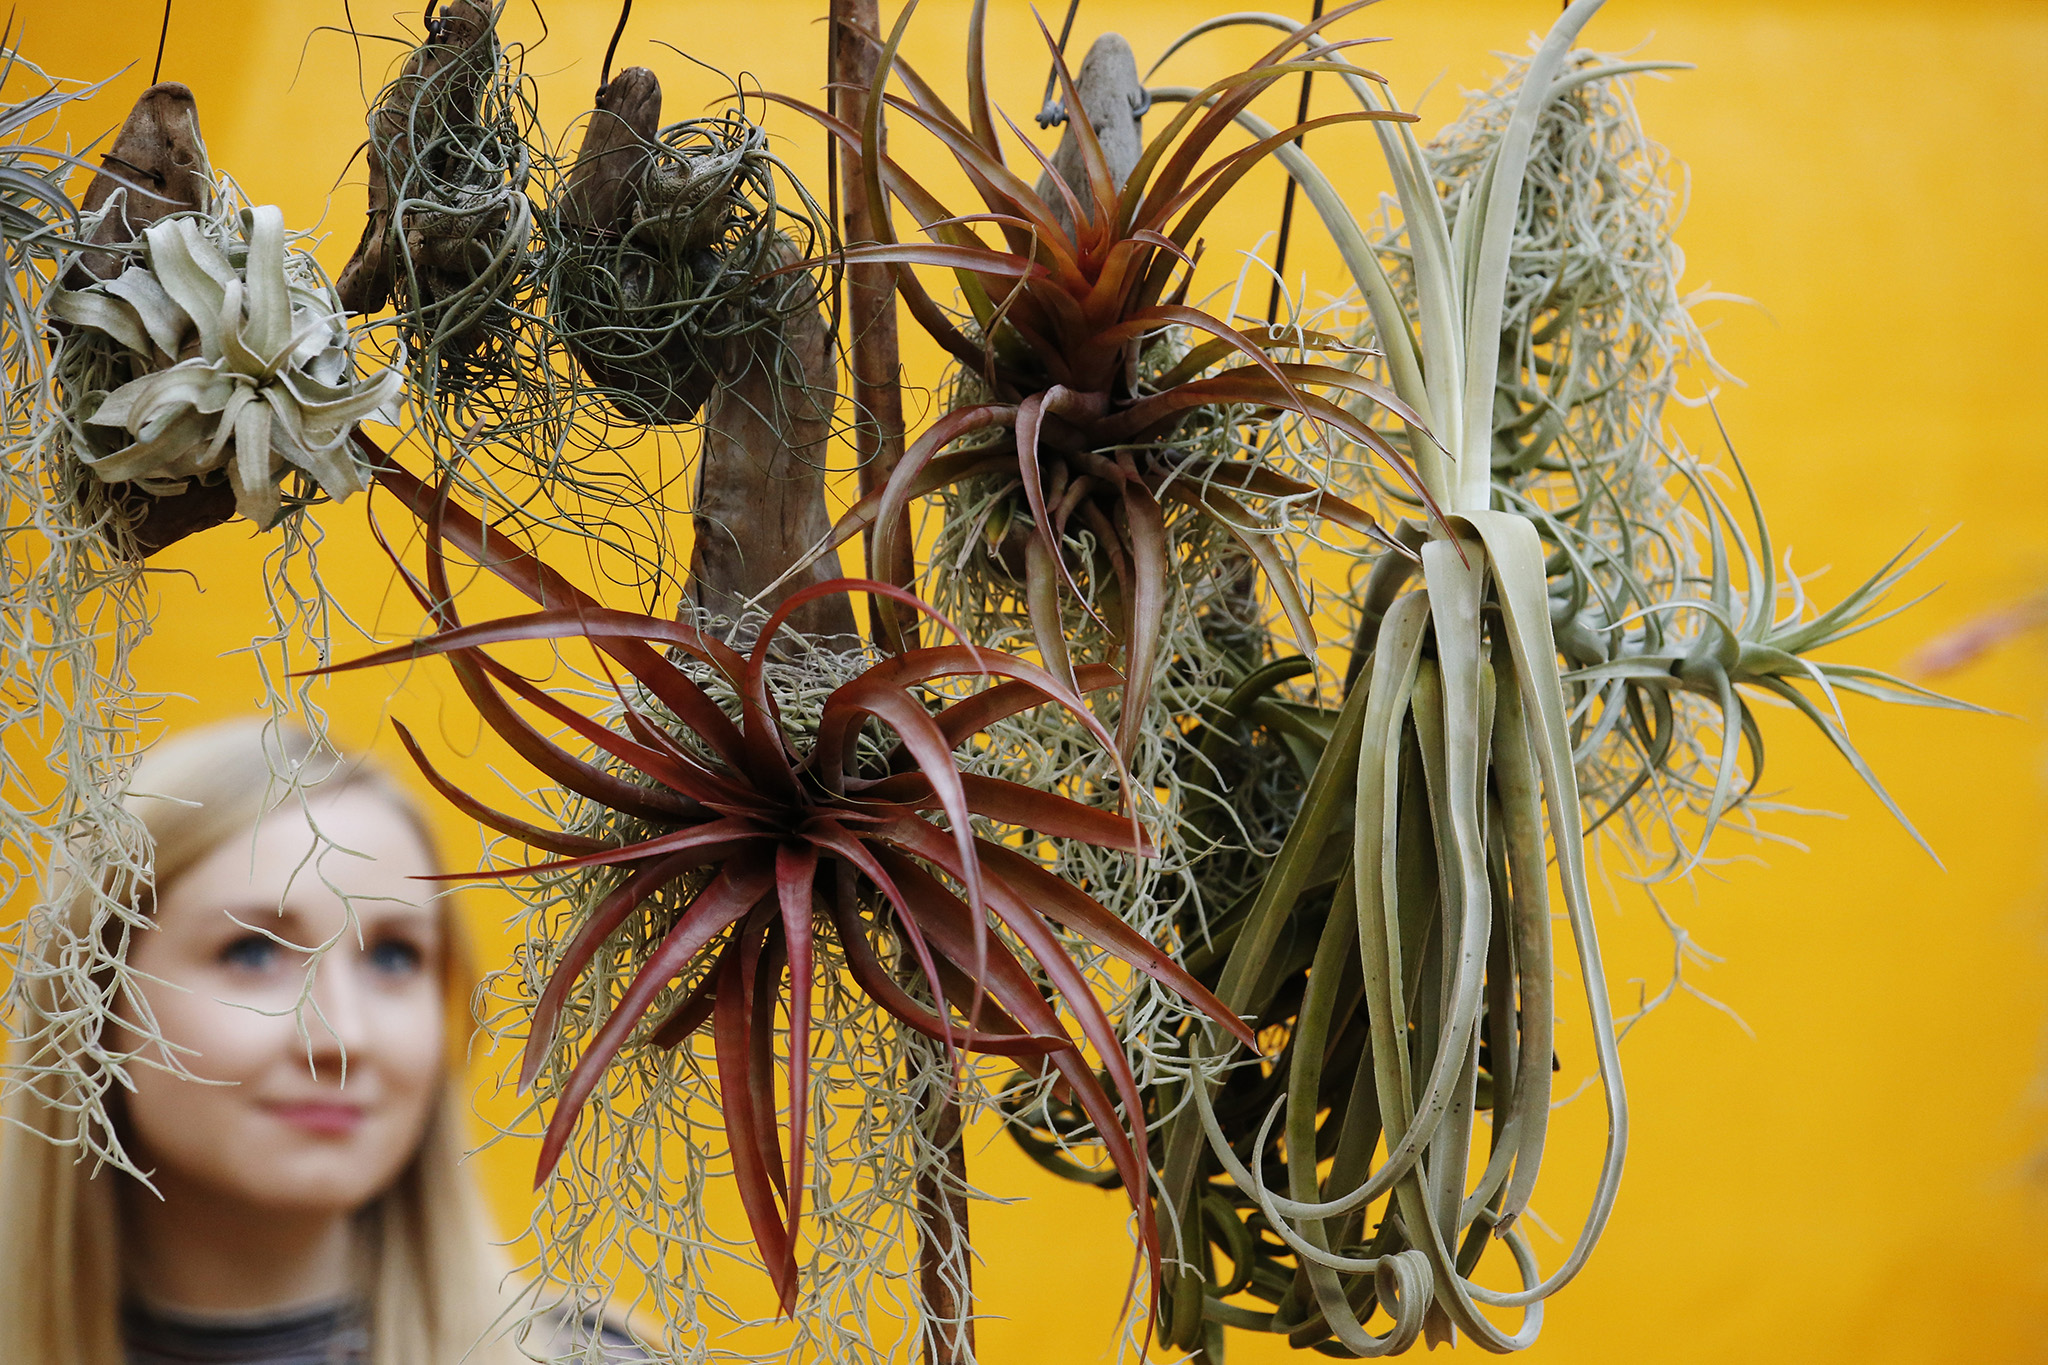 An RHS employee views airplants diplayed on the Aldo Airplants exhibition display at the RHS London Shades of Autumn Show at RHSHorticultural Halls in London Friday October 28, 2016. Luke MacGregor / RHS